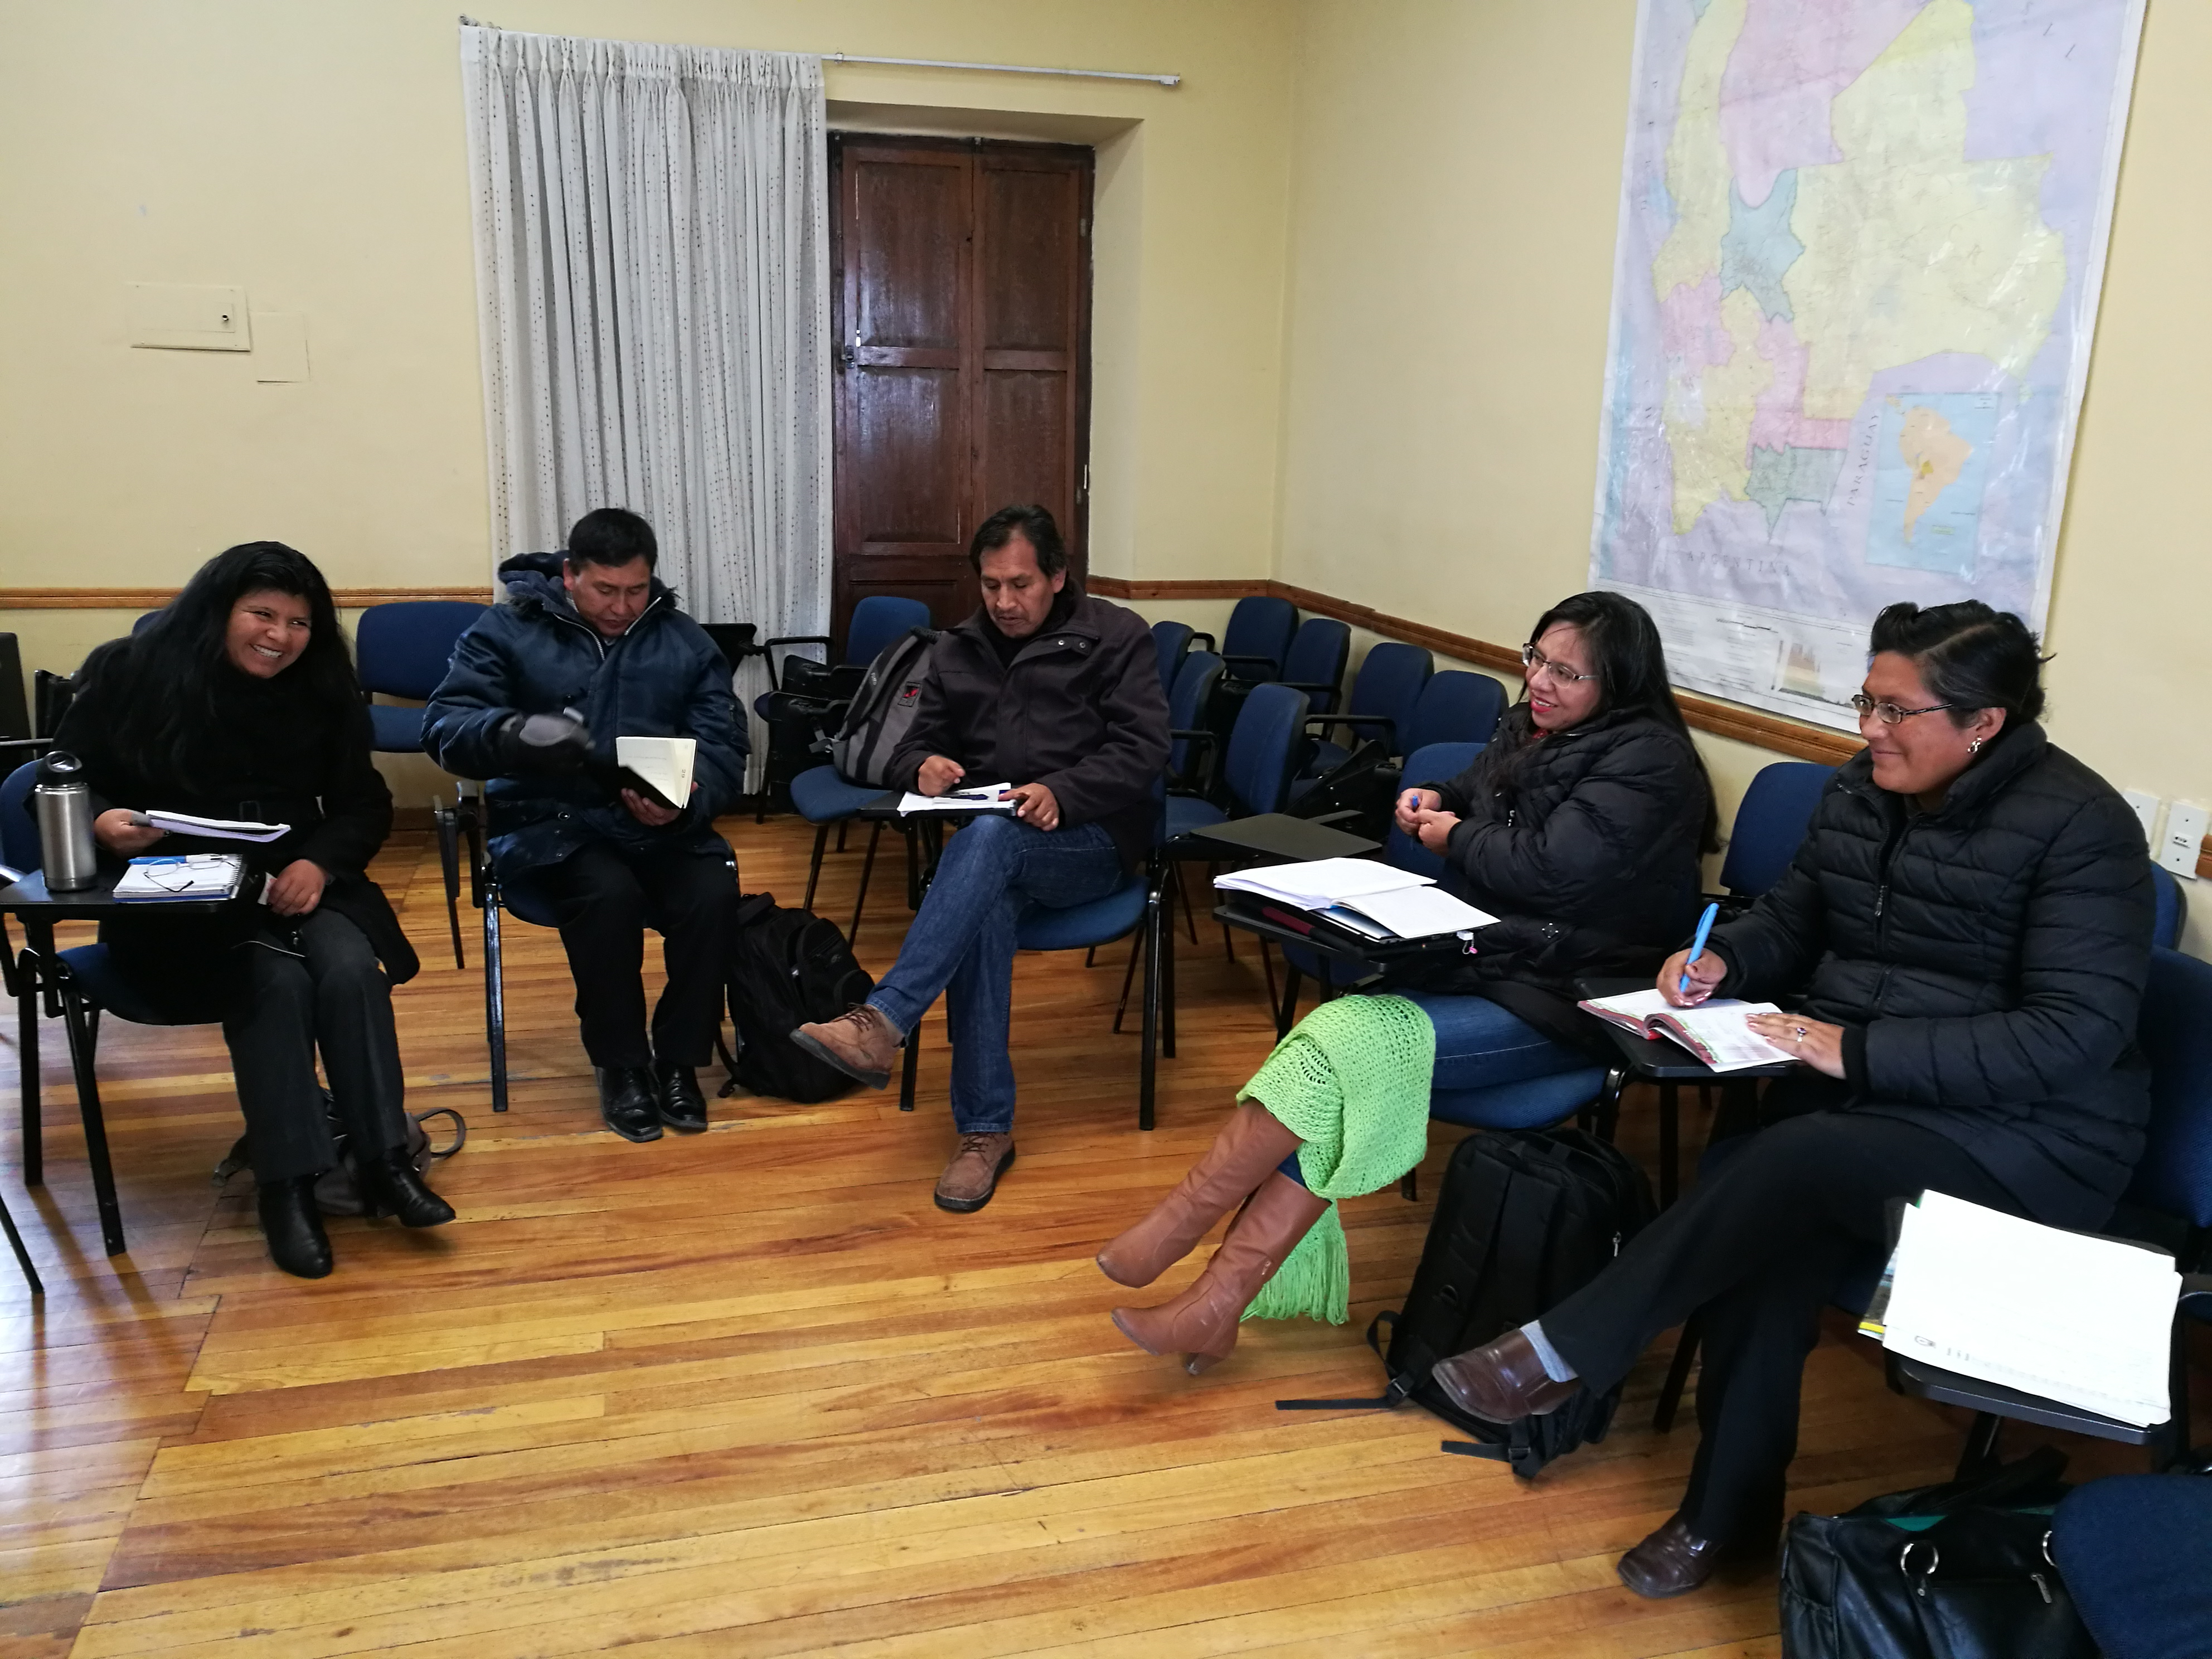 Members of UMAVIDA, the Bolivian Joining Hands network, meet to discuss and plan the network bi-laws and environmental campaign. La Paz, Bolivia